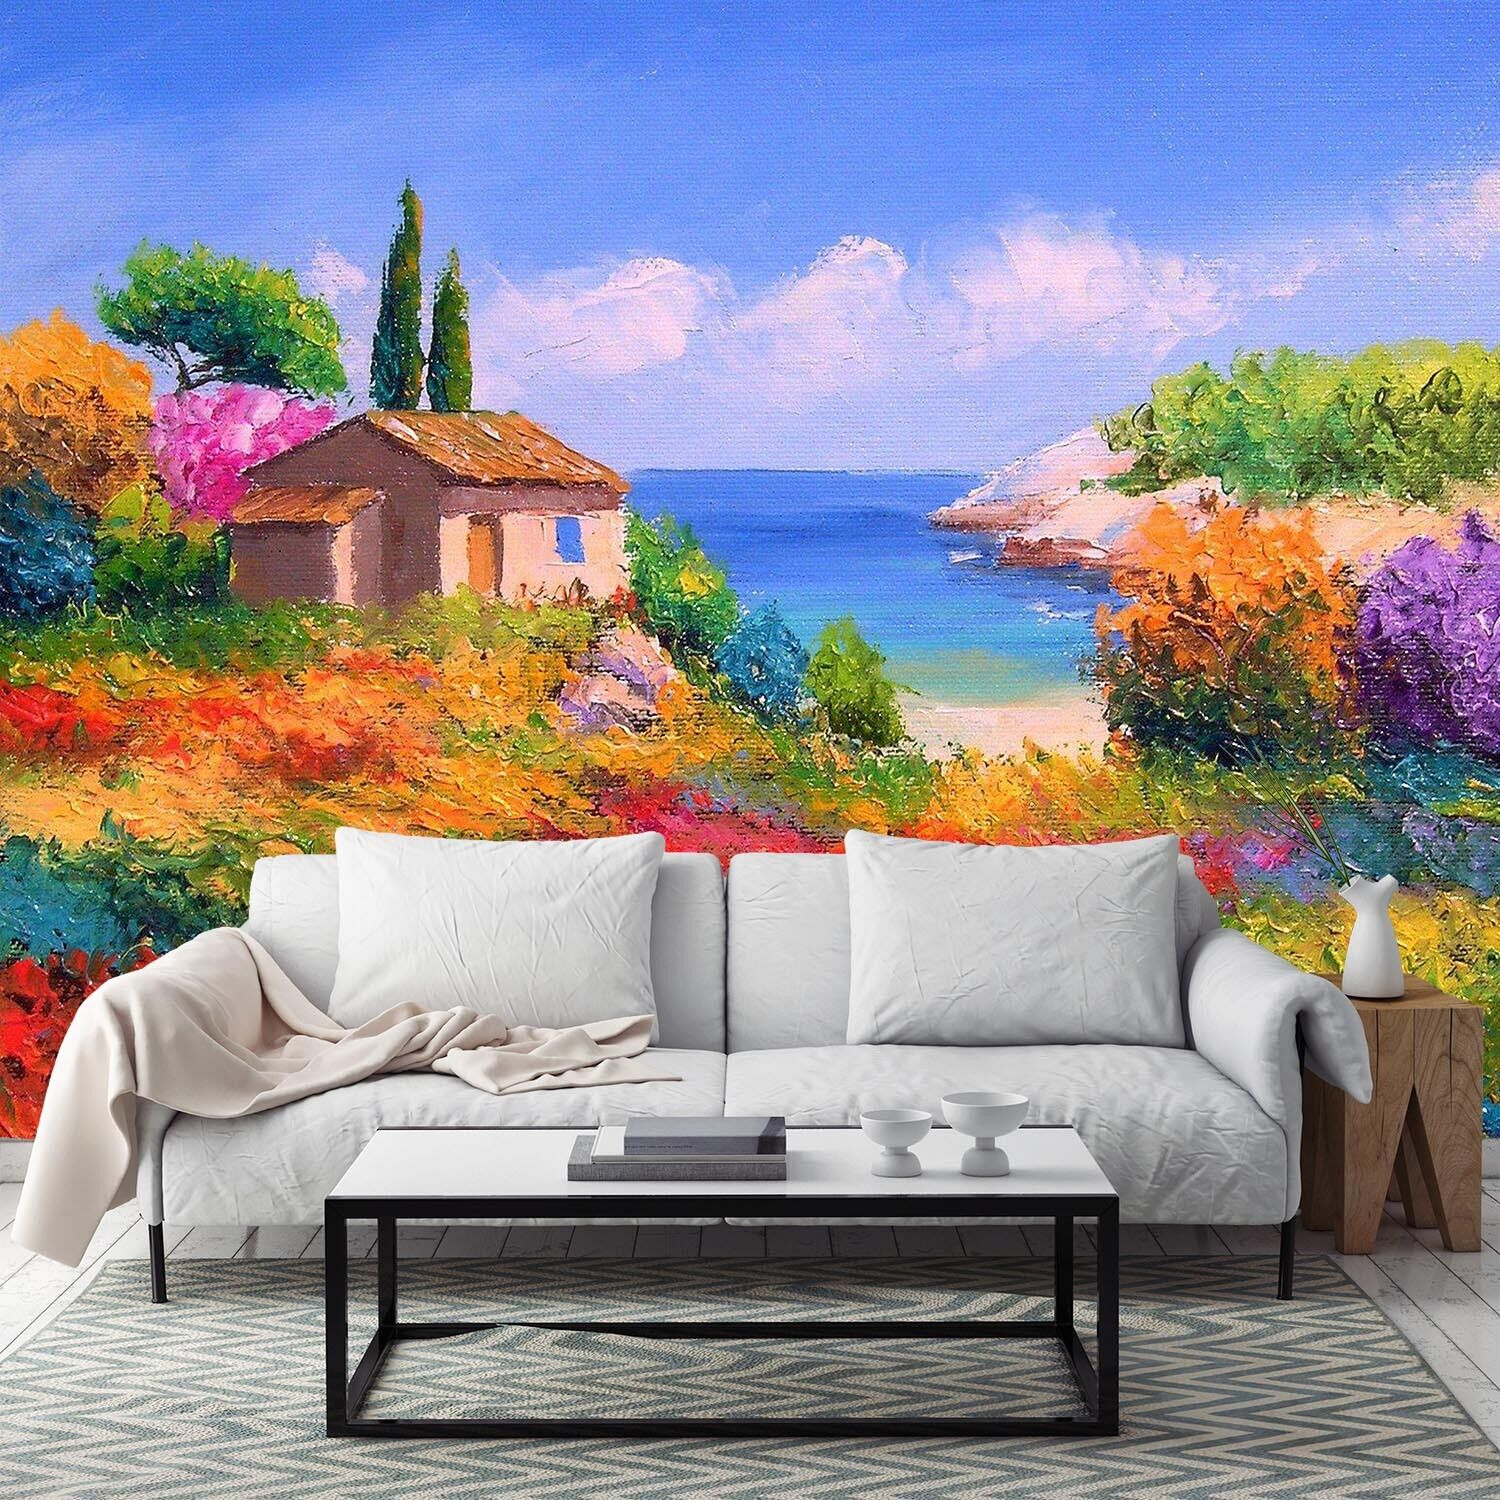 3D color Bed House Painted Wall Paper Wall Print Decal Wall AJ WALLPAPER CA